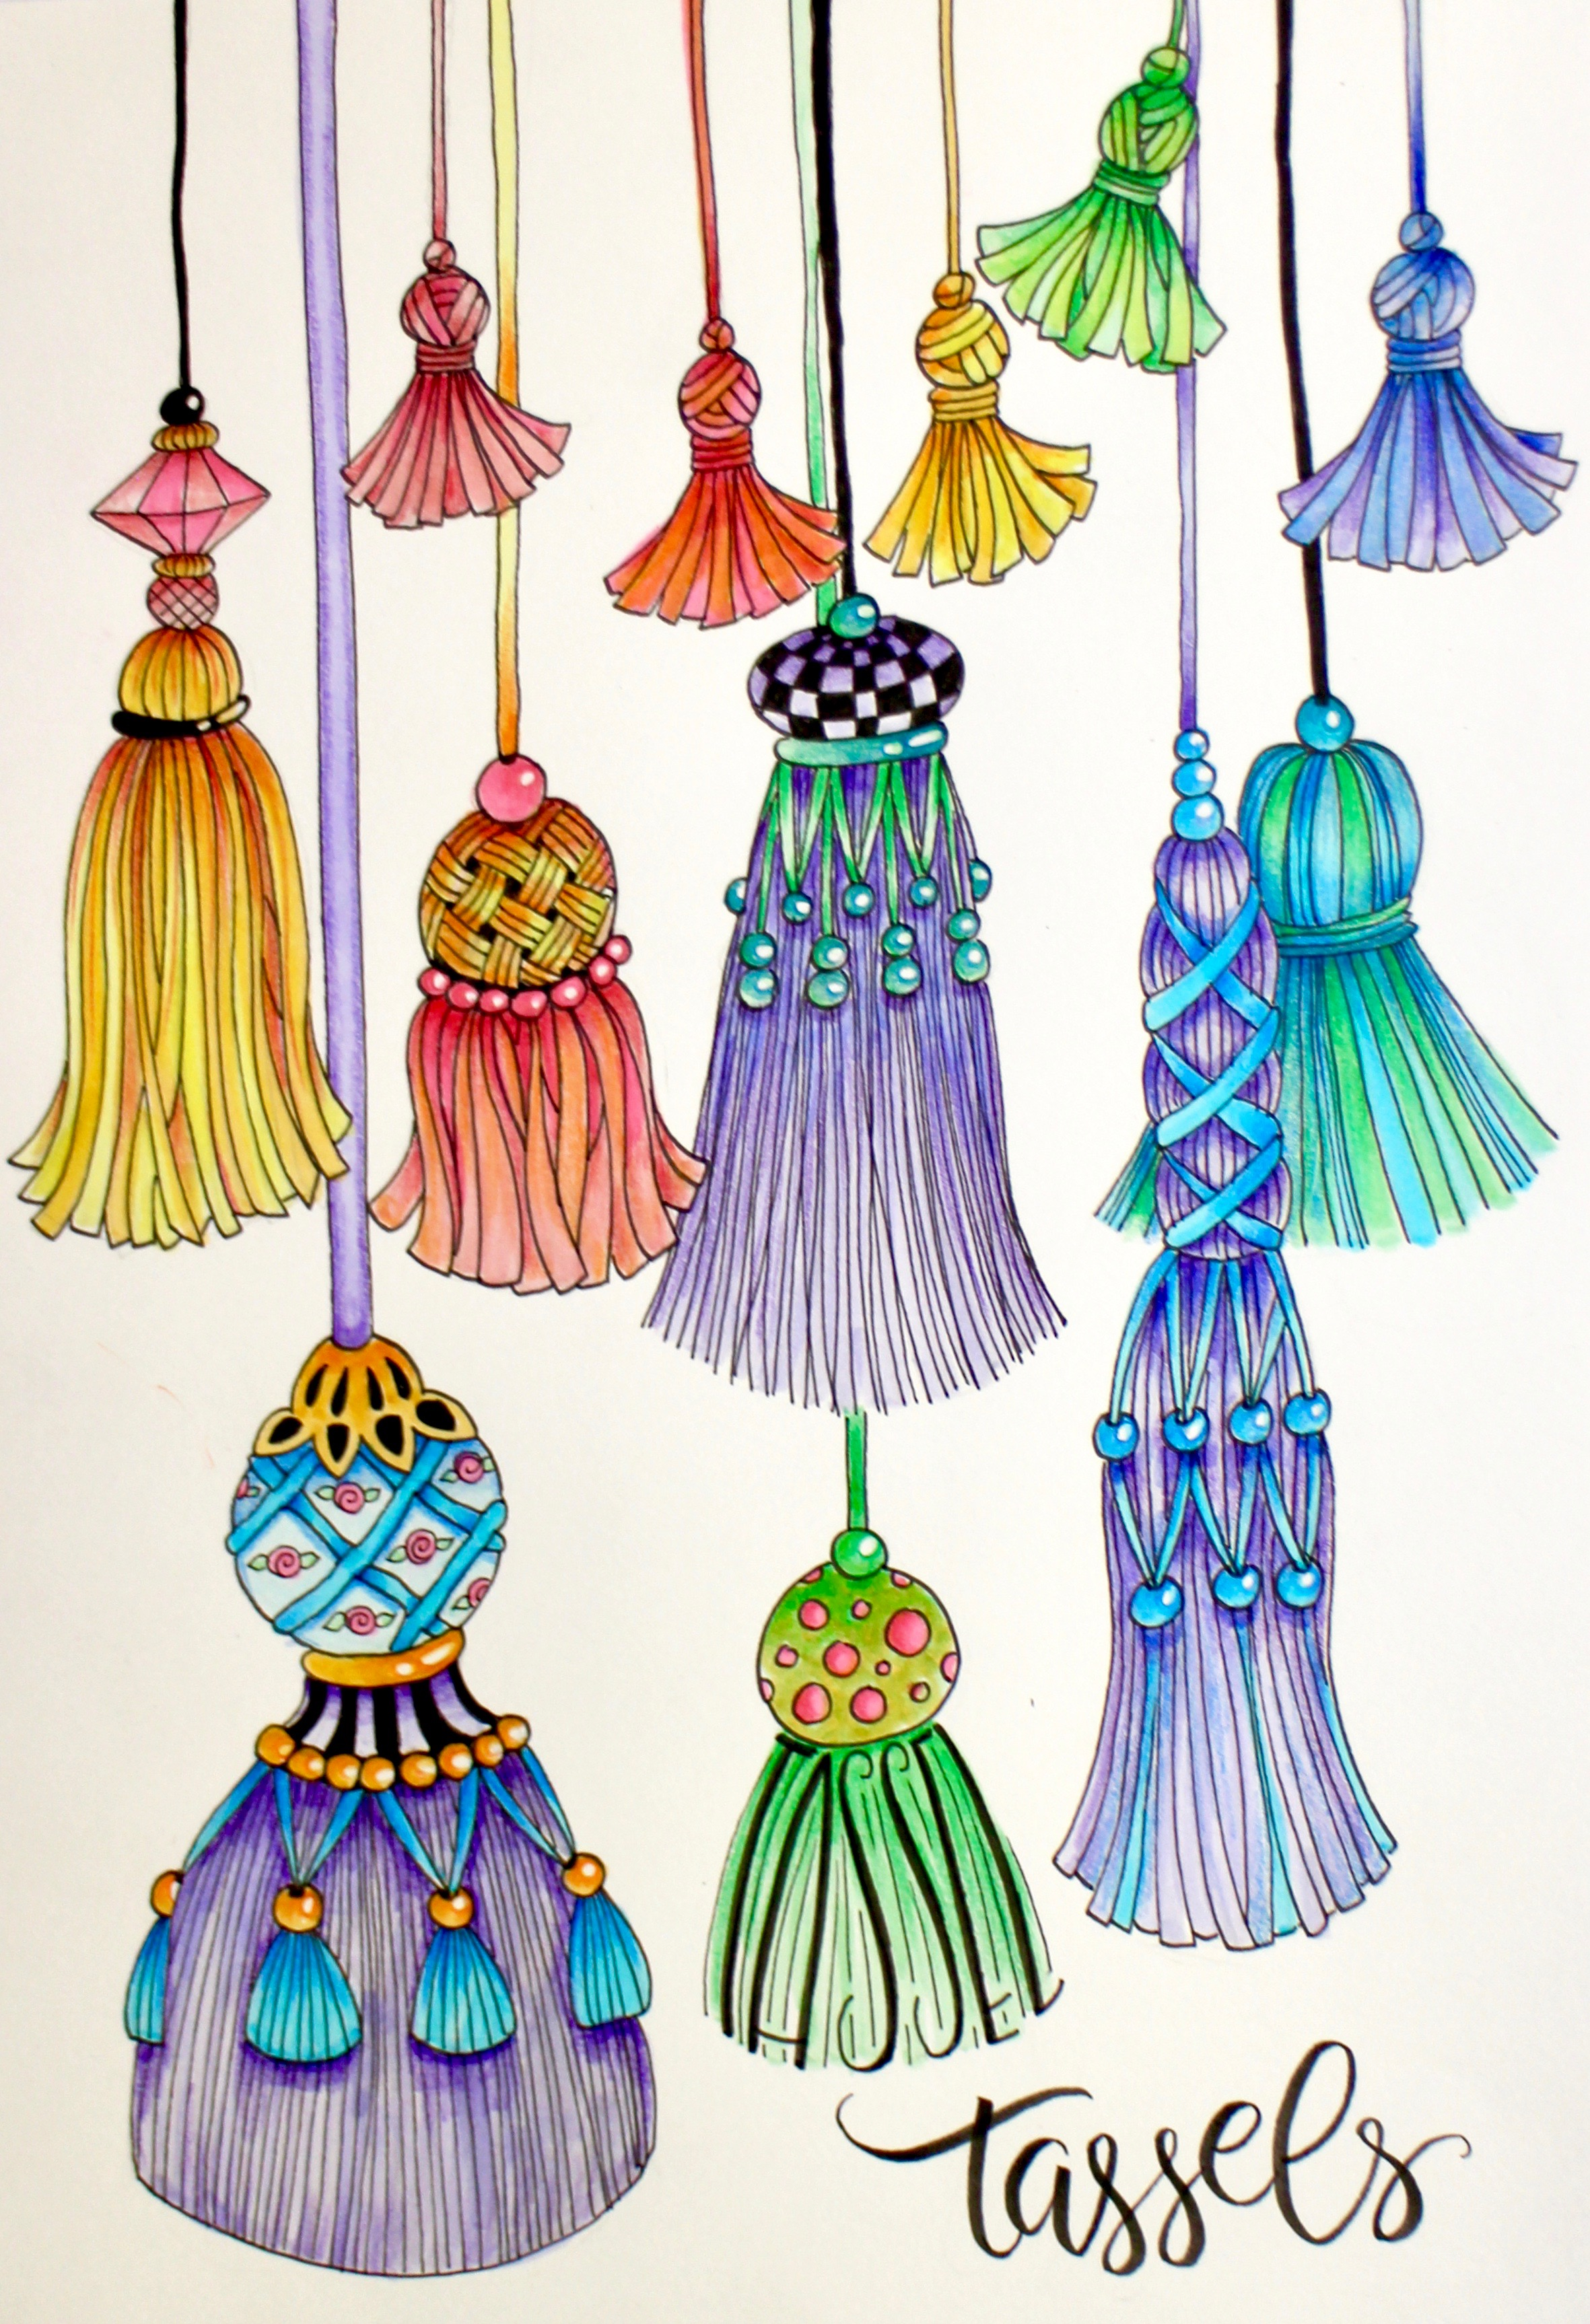 Shading with Irojitens Fringe and Tassels Marie Browning